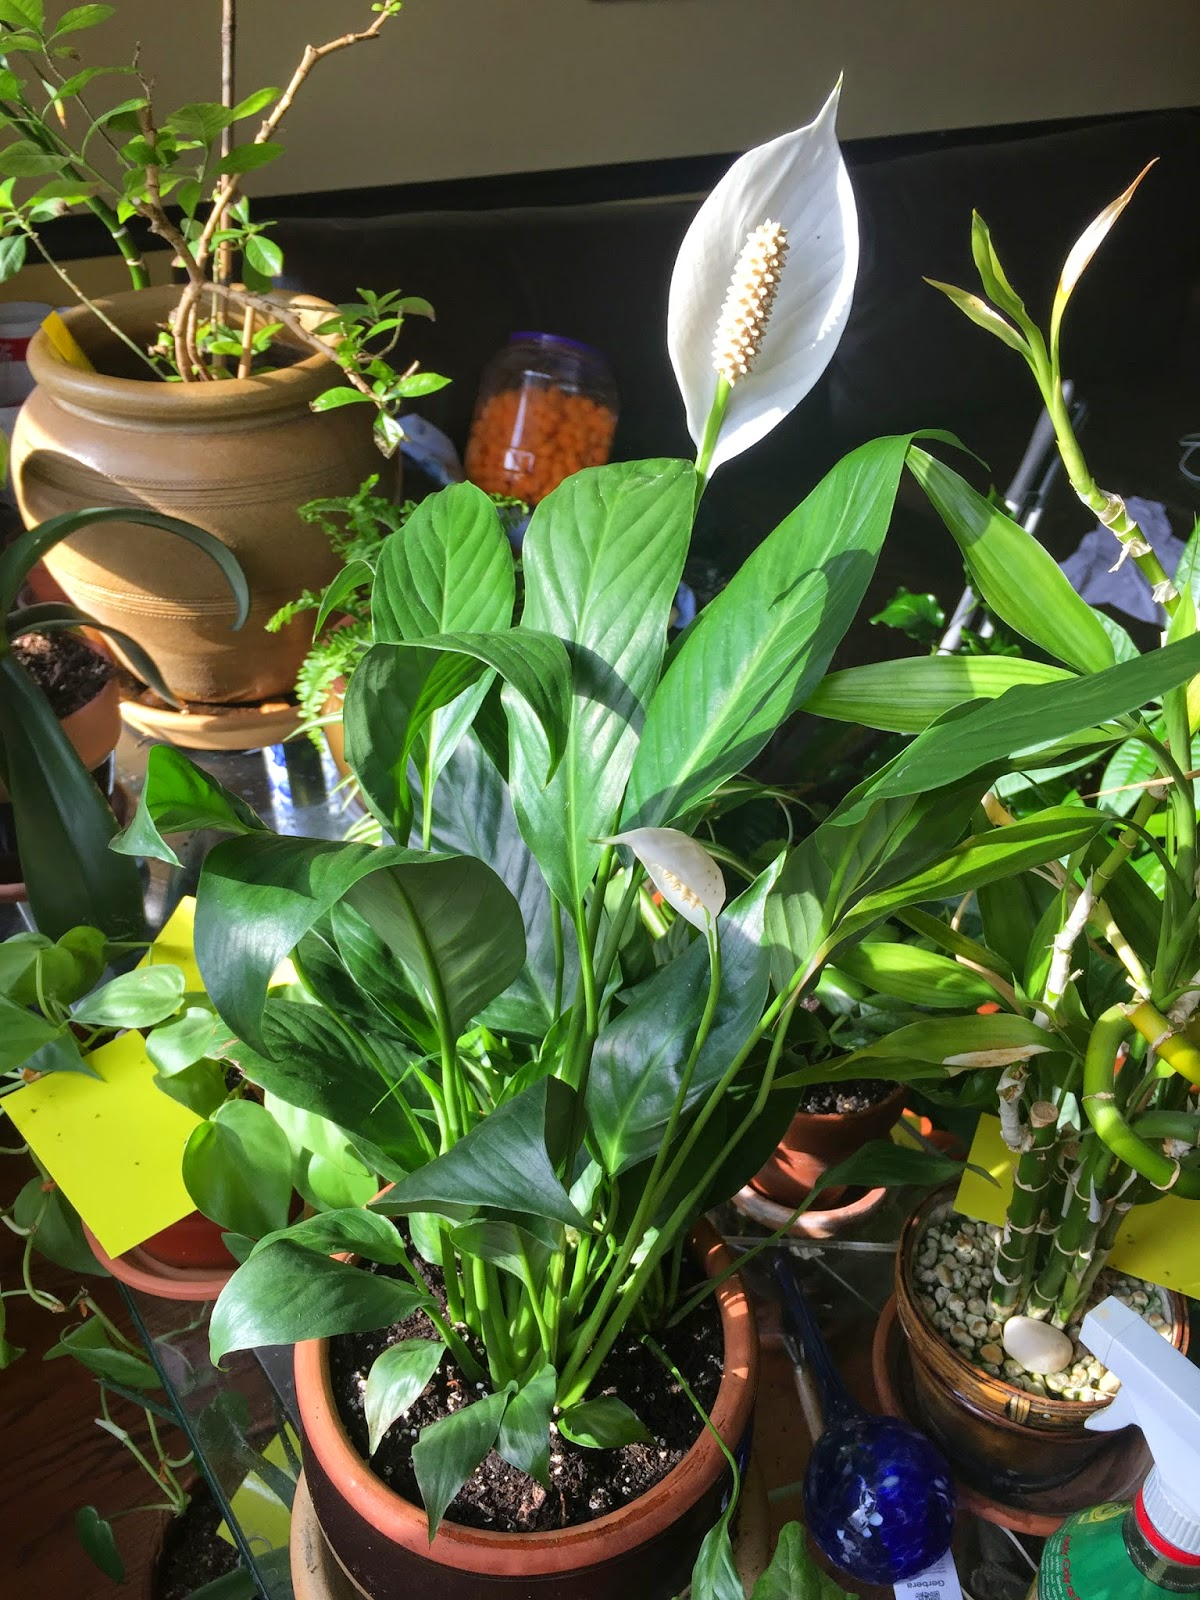 Peace lily spathiphyllum sp best air purifying plant 7 peace lily spathiphyllum sp best air purifying plant 7 indoor gardening my aerogarden and houseplant blog izmirmasajfo